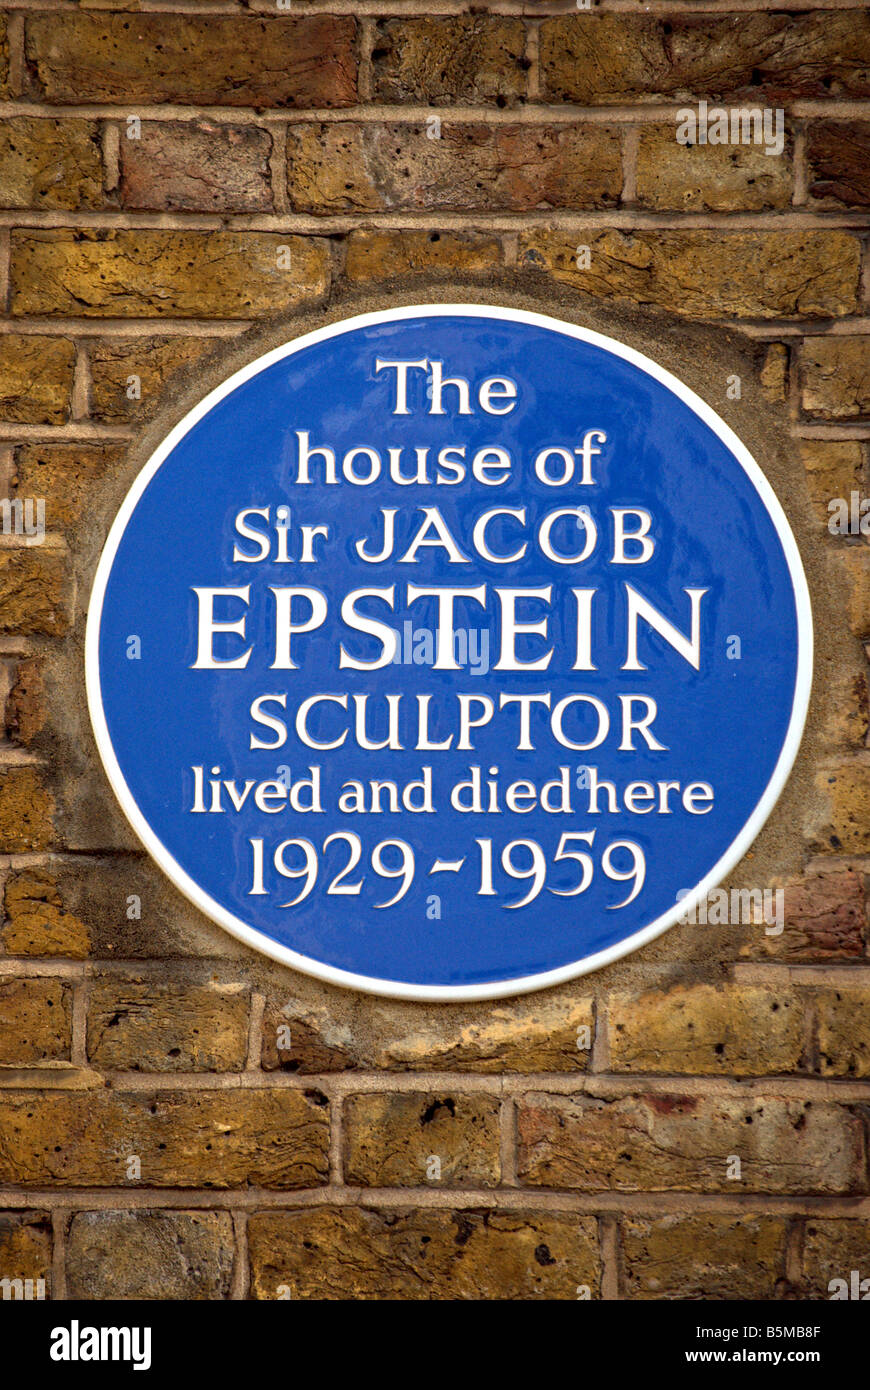 blue plaque marking a house where sculptor sir jacob epstein lived and died, in kensington, london, england - Stock Image